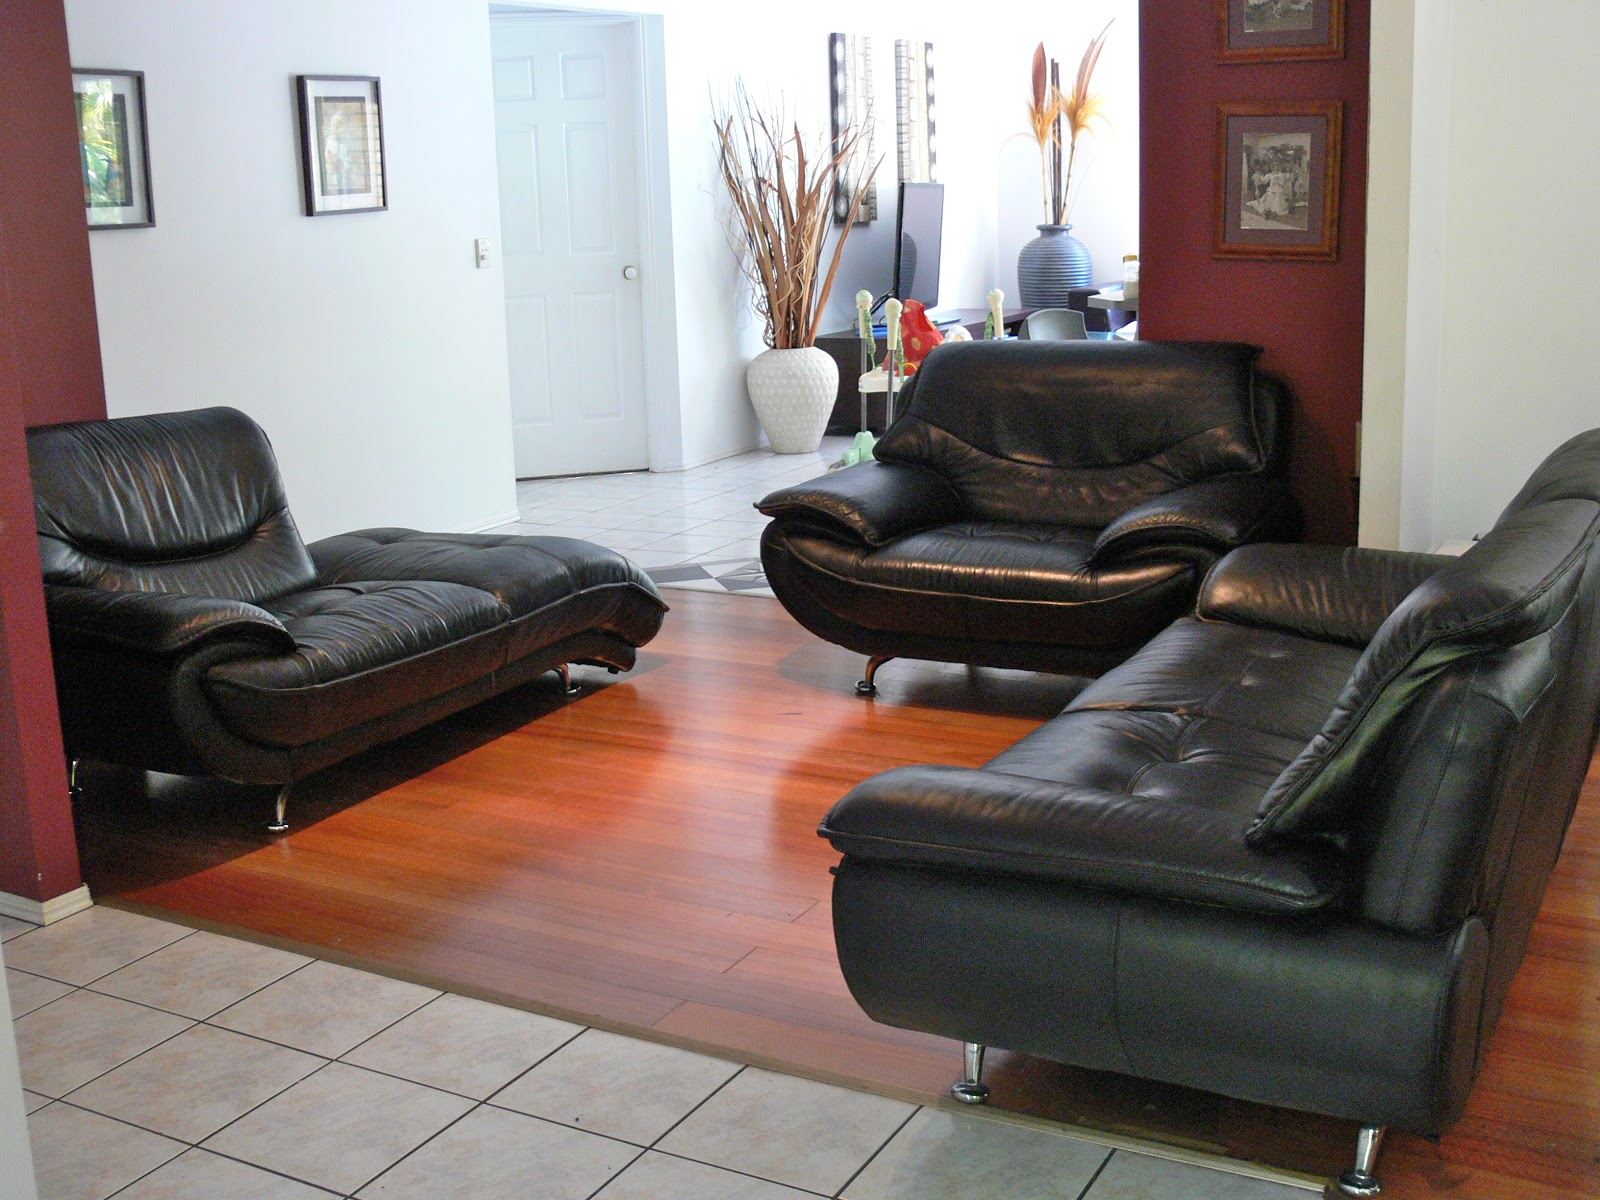 Leather Sofa Repair Orange County Vineys Beds Dyeing Furniture Decoration Access